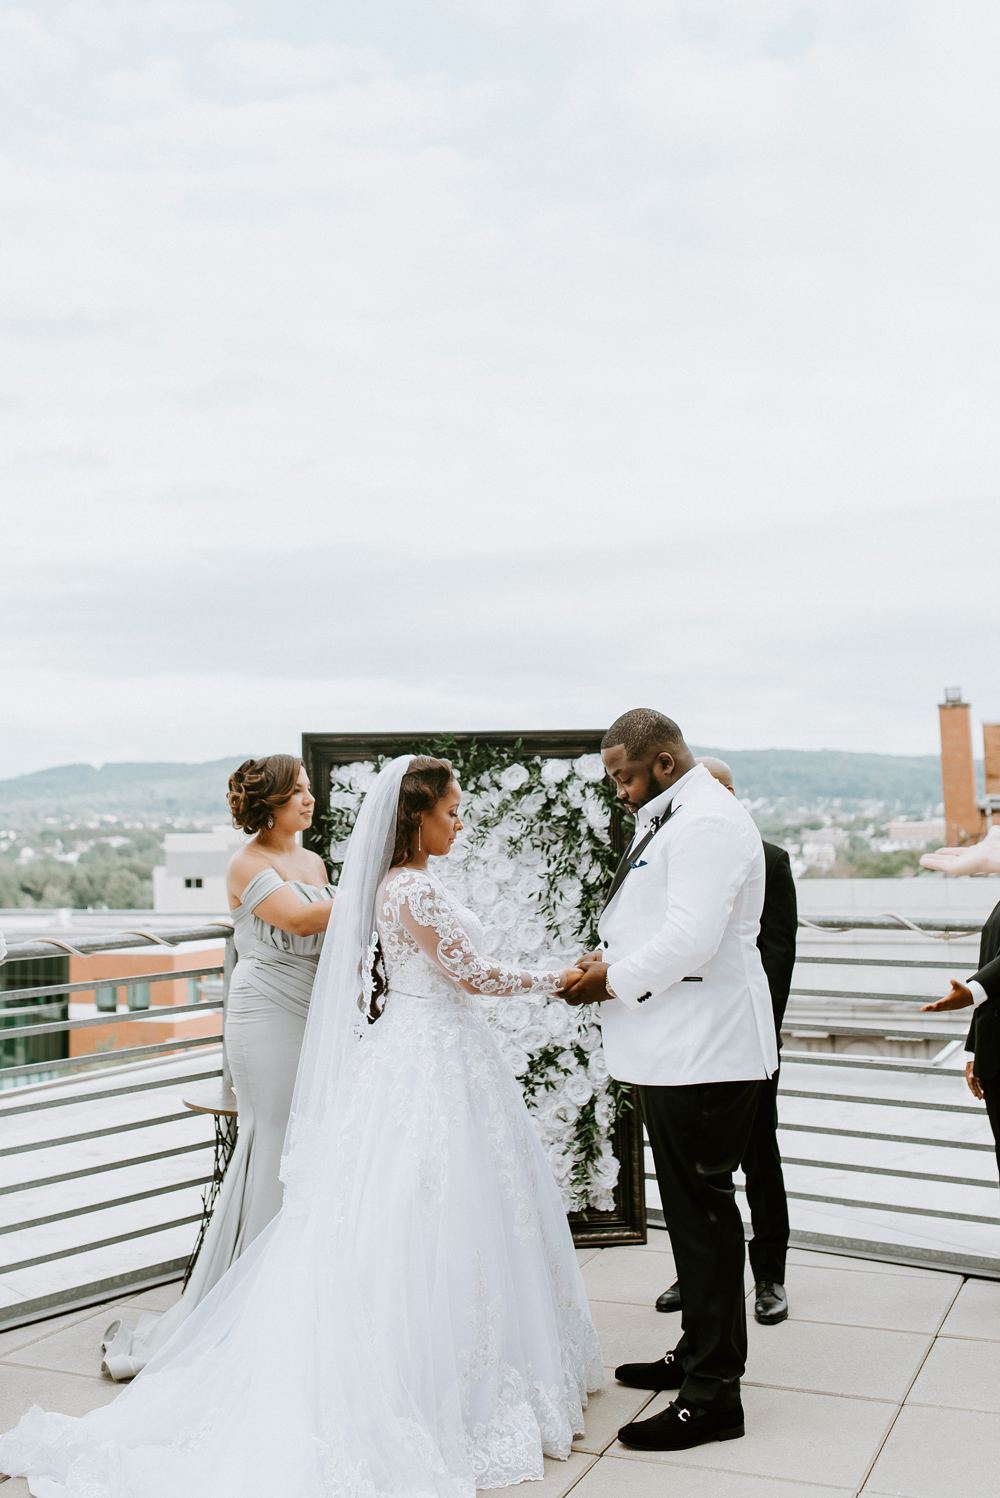 Balcony Wedding Ceremony at the Renaissance Hotel Allentown PA , New Jersey Wedding Photographer, Philadelphia Wedding Photographer Anais Possamai Photography